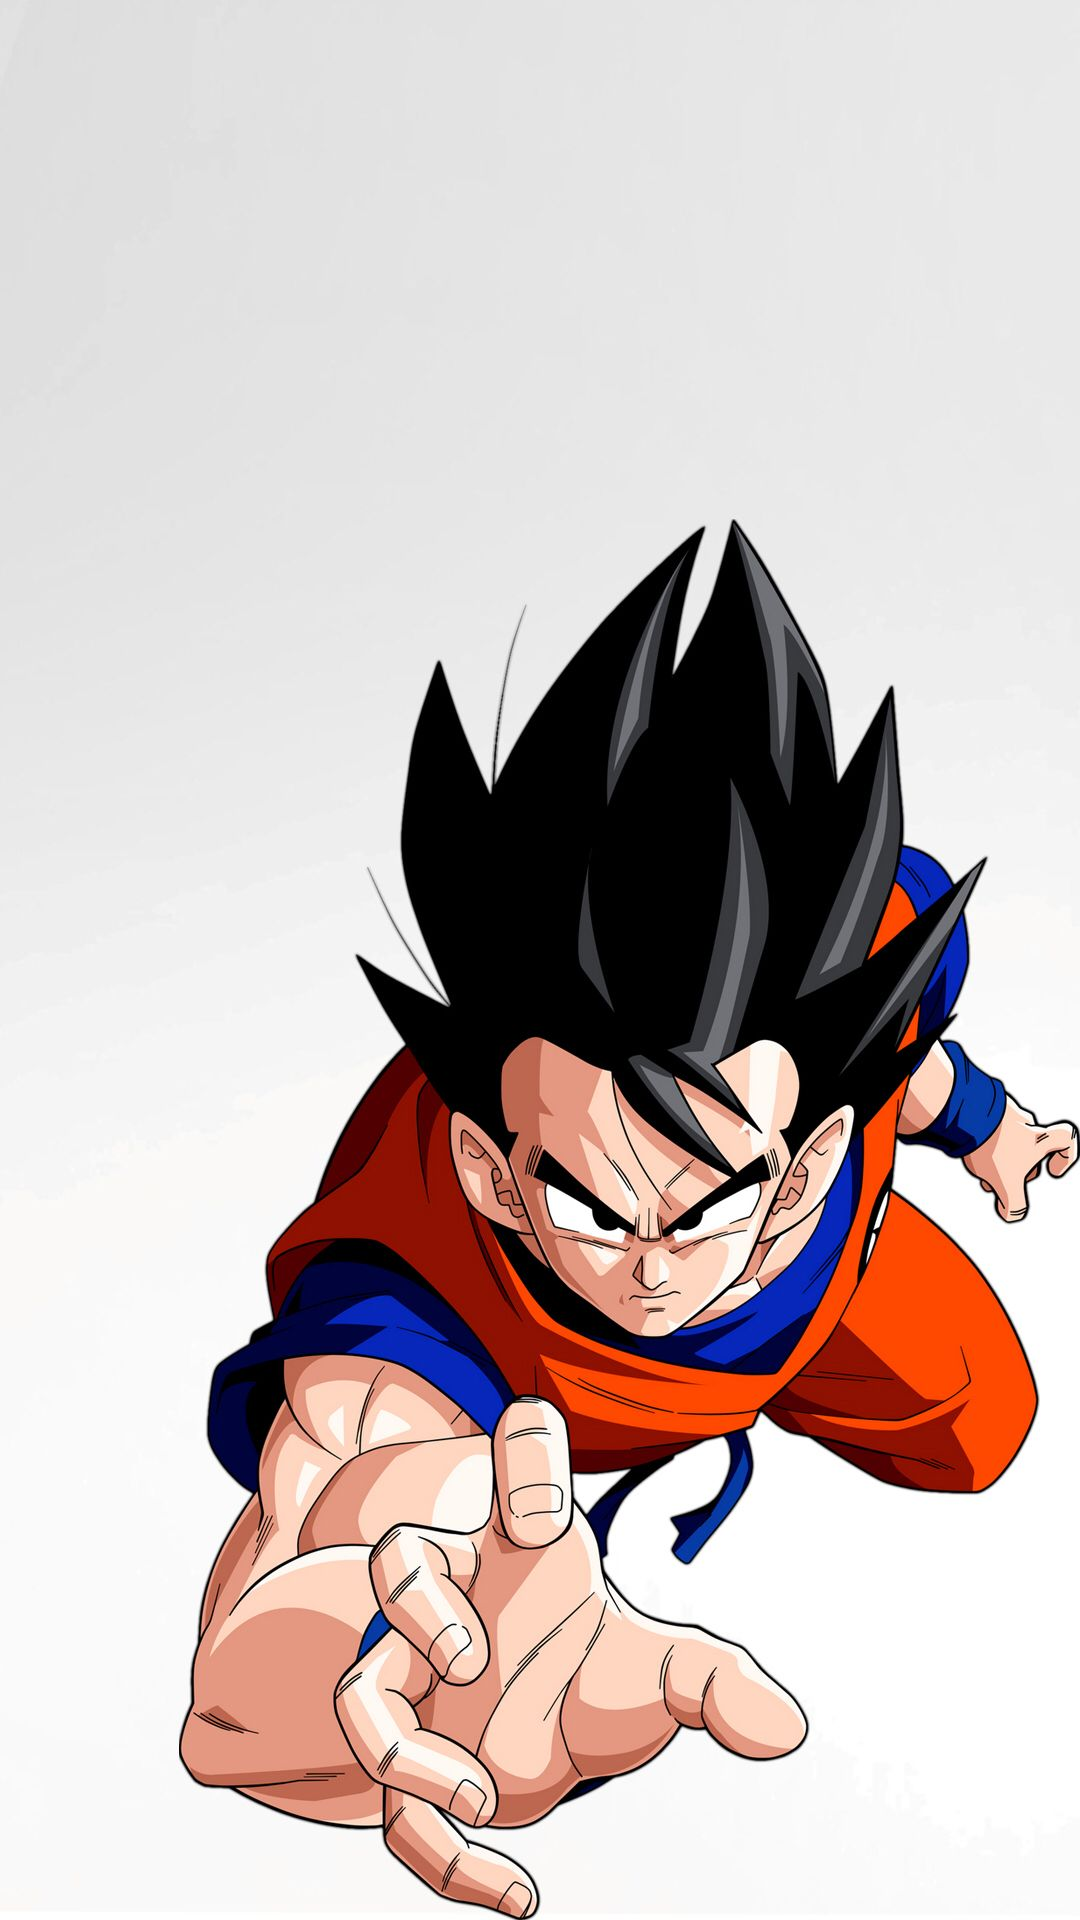 goku wallpaper iphone 6 plus places to visit